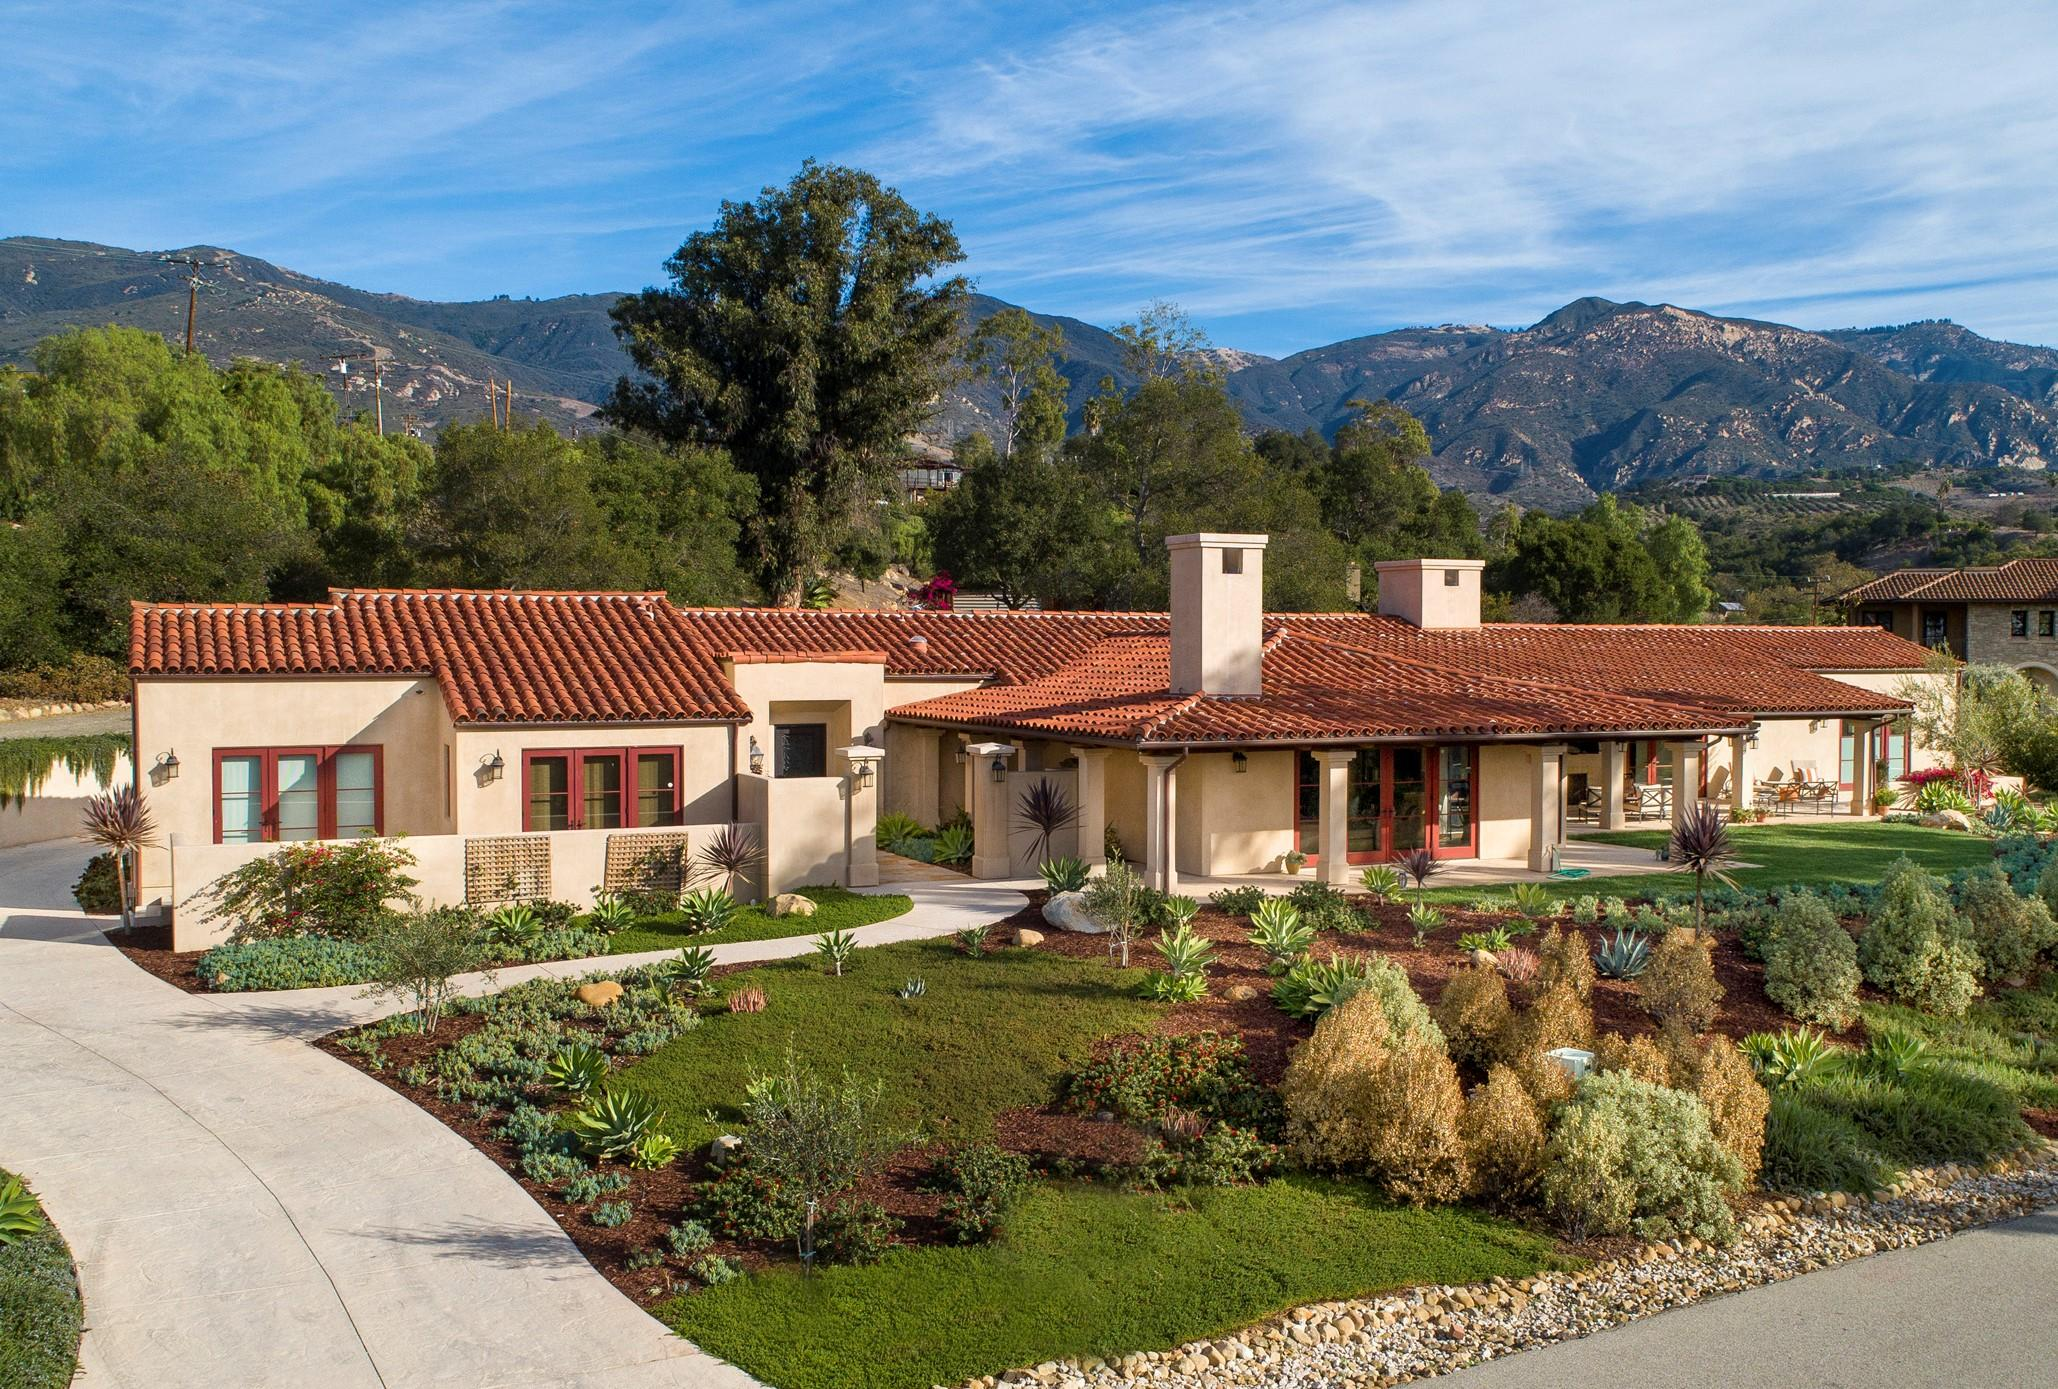 1230  San Antonio Creek Road, Santa Barbara, California